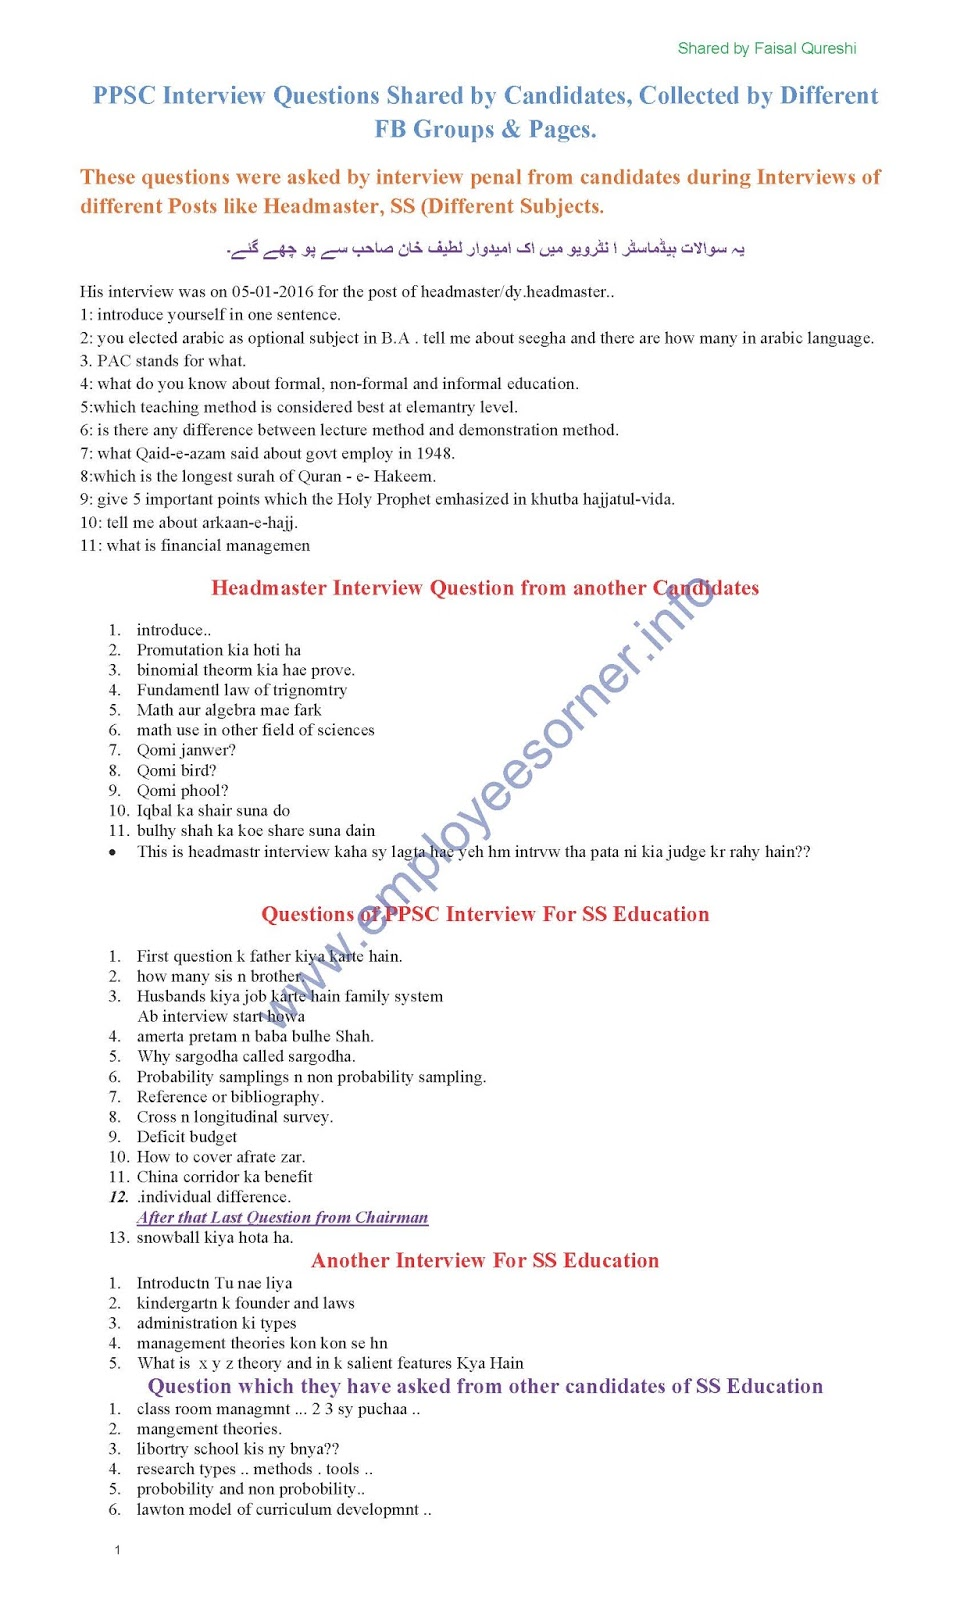 200+ PPSC Interview Questions, Abbreviations and GK Useful for all